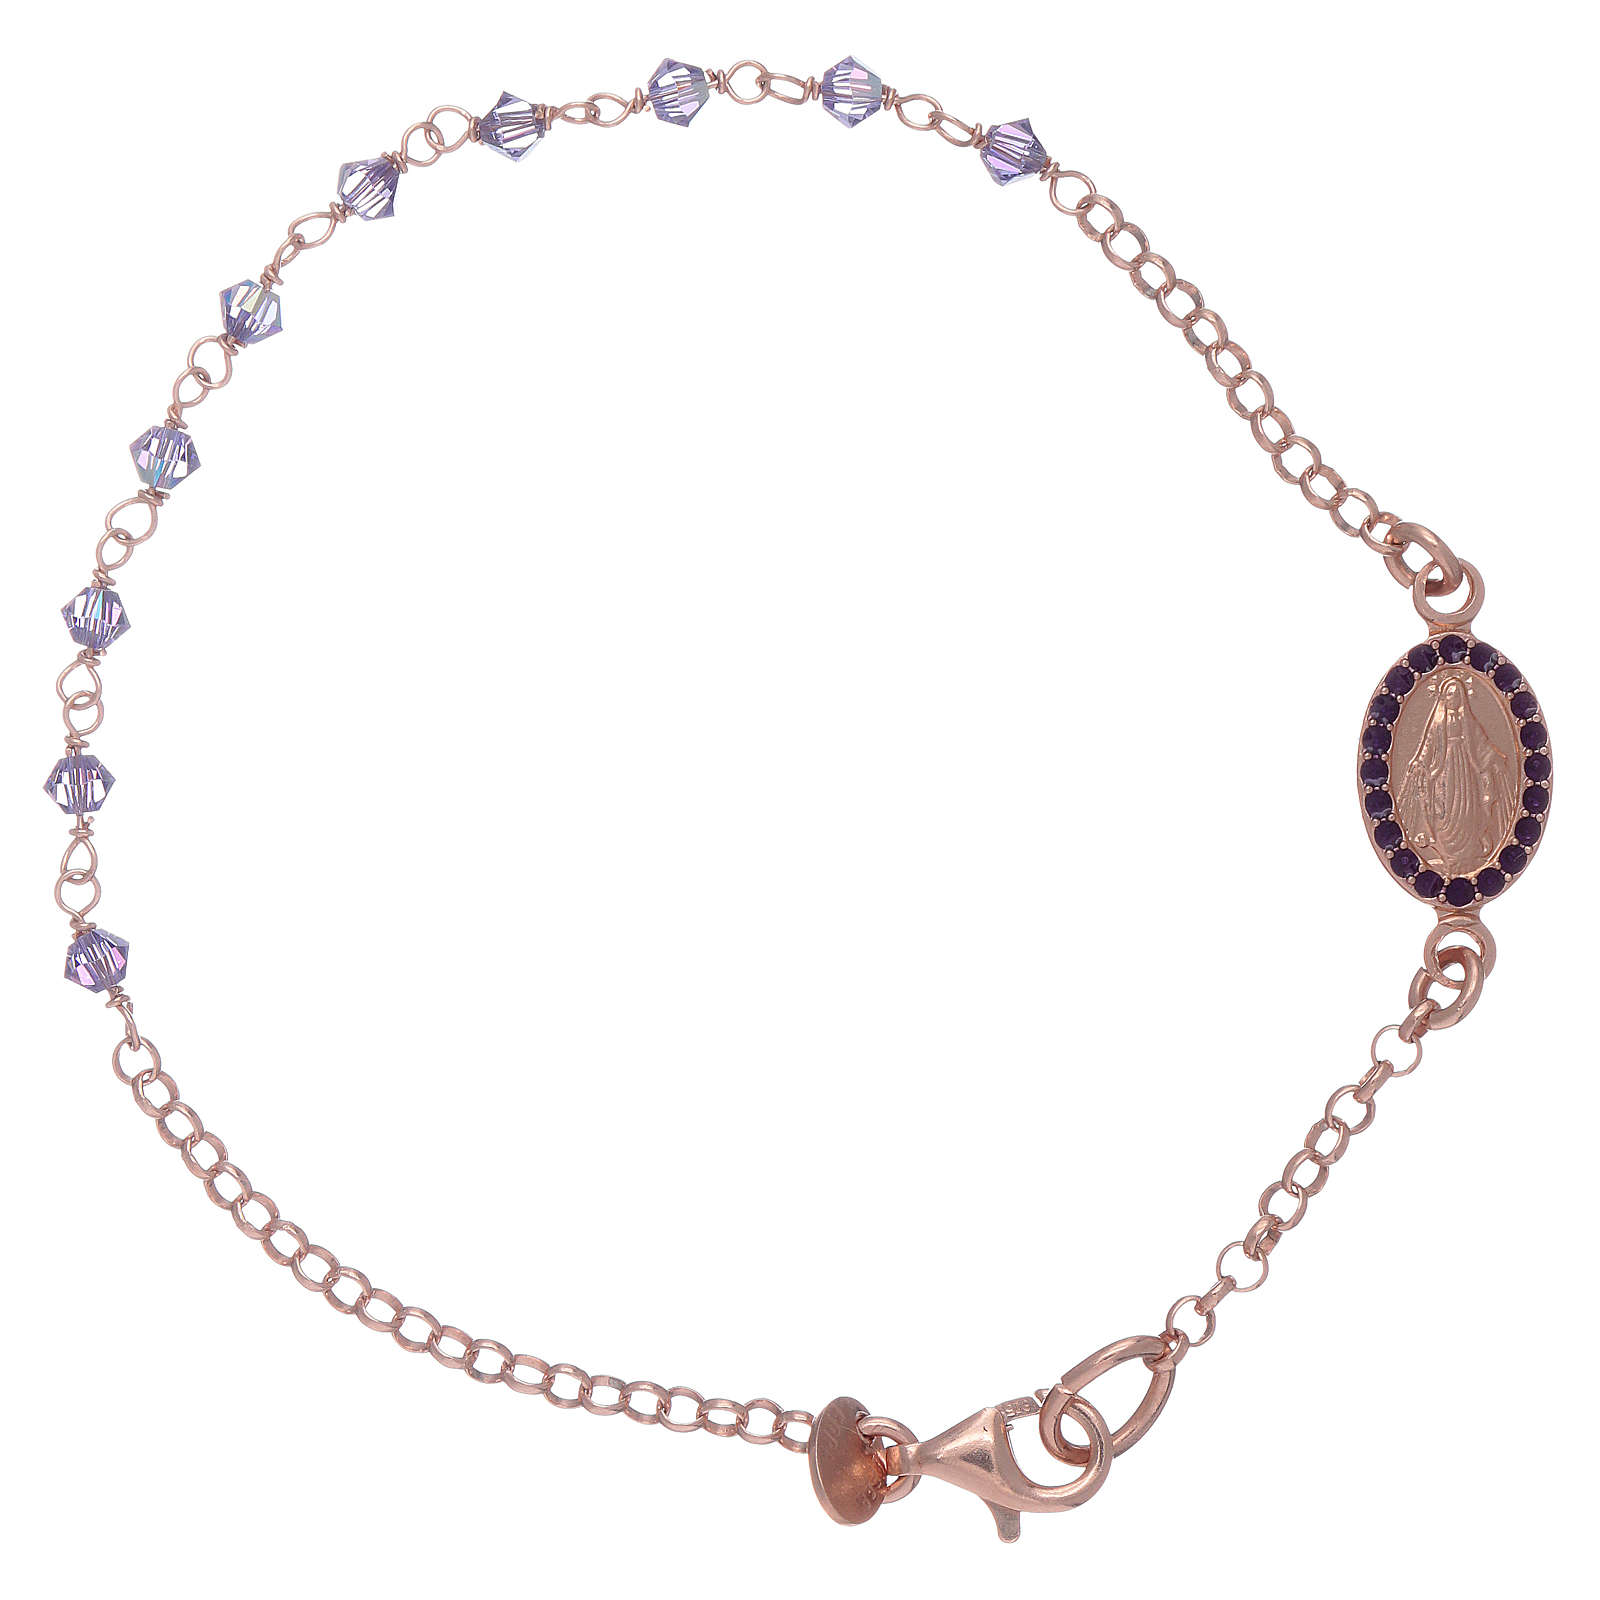 Miraculous medal bracelet in sterling silver with Swarovski crystals 2mm 4